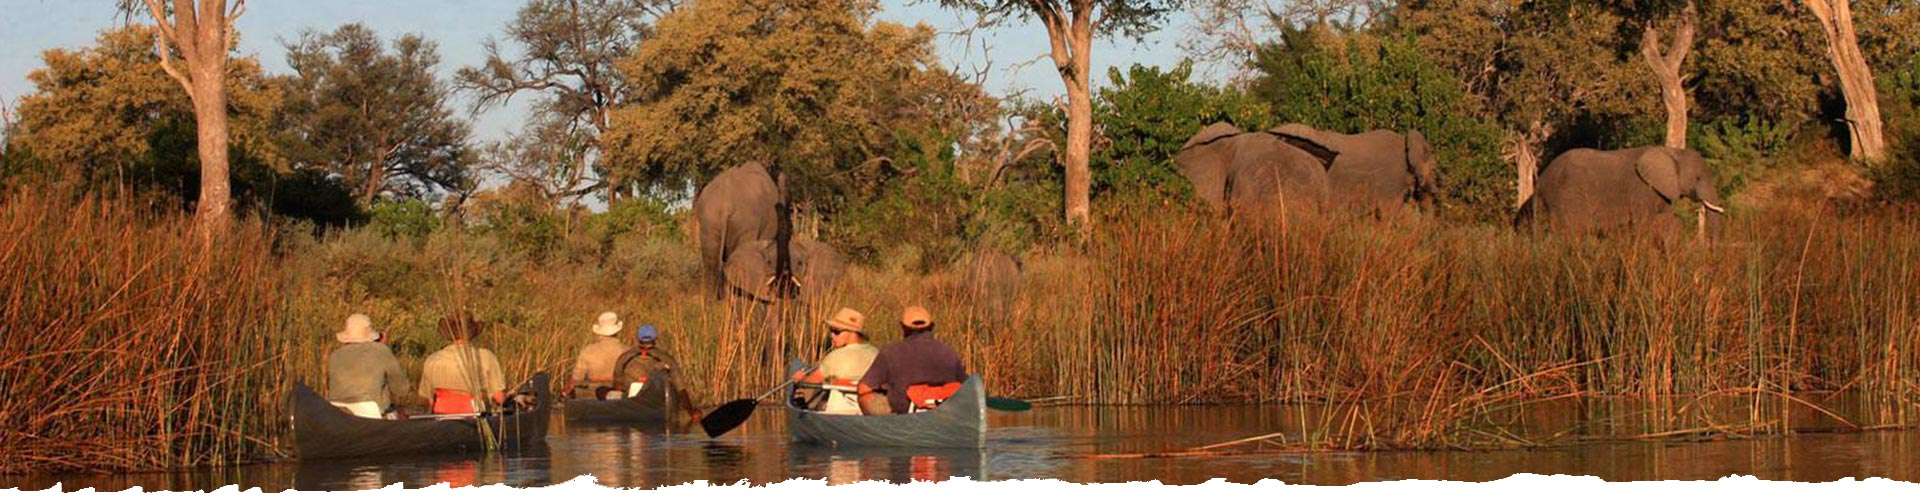 Explore-Botswana-Activities-slider